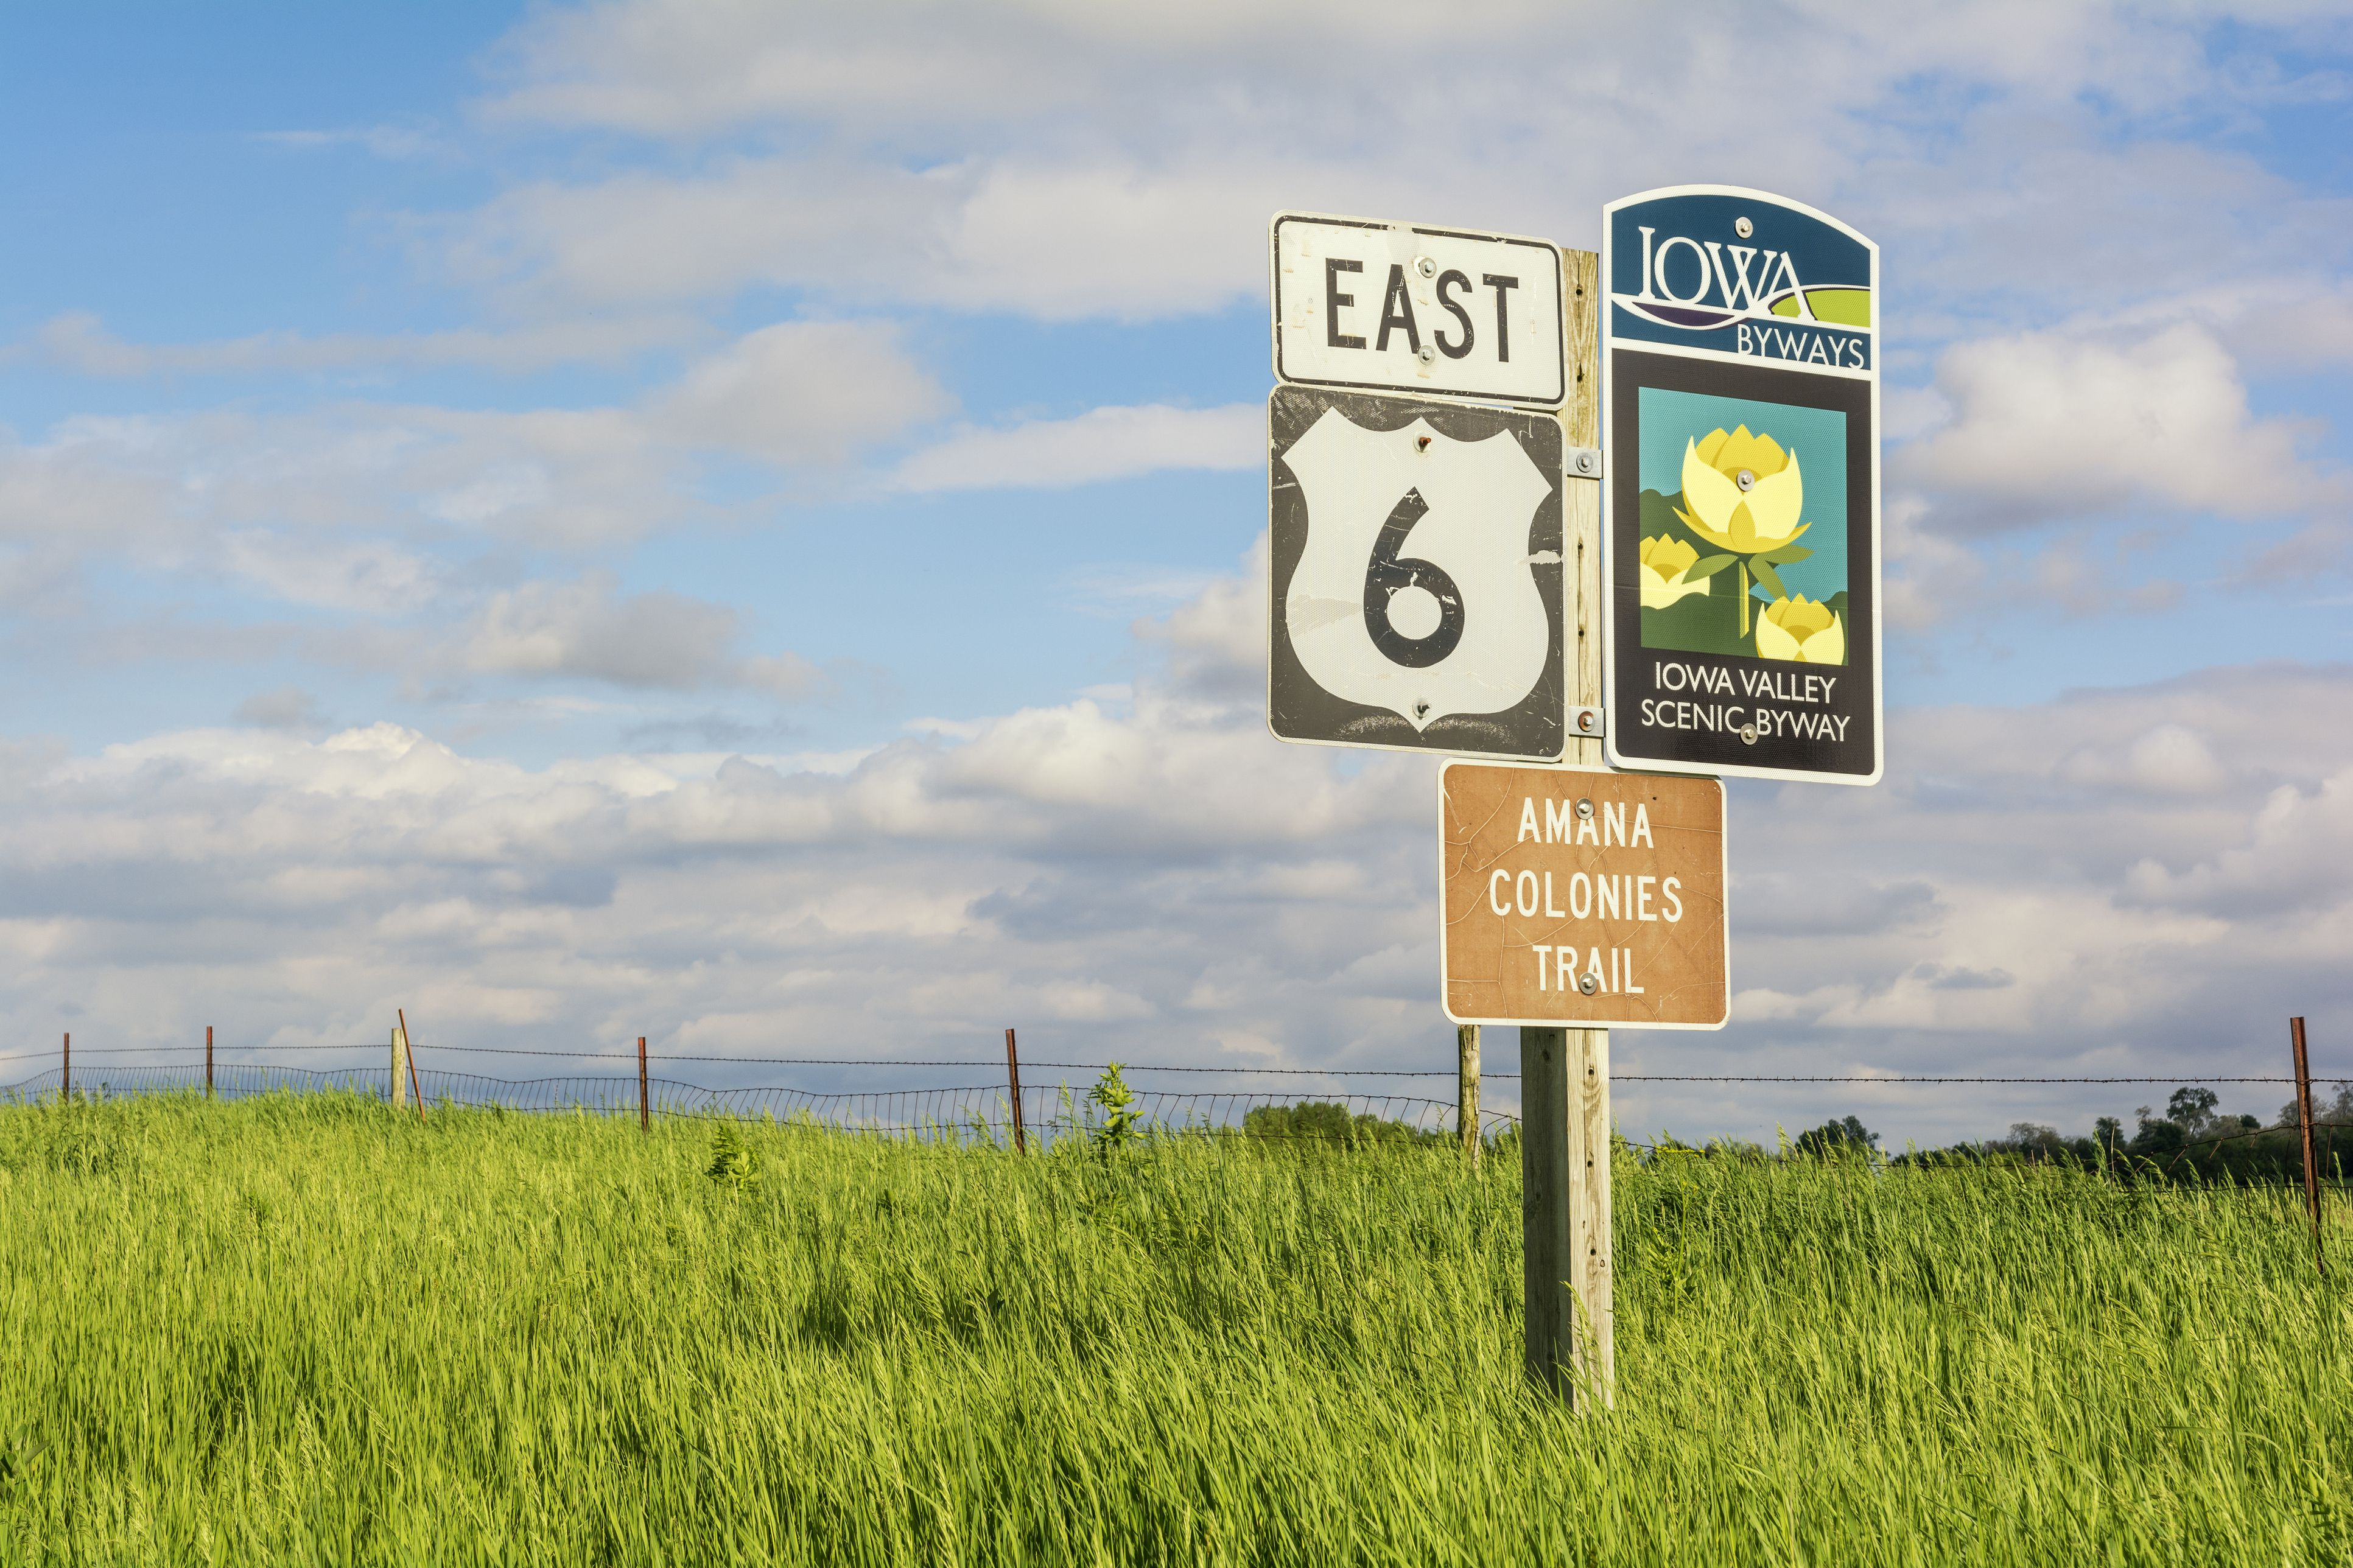 Amana Colonies Trail, Iowa Valley Scenic Byway